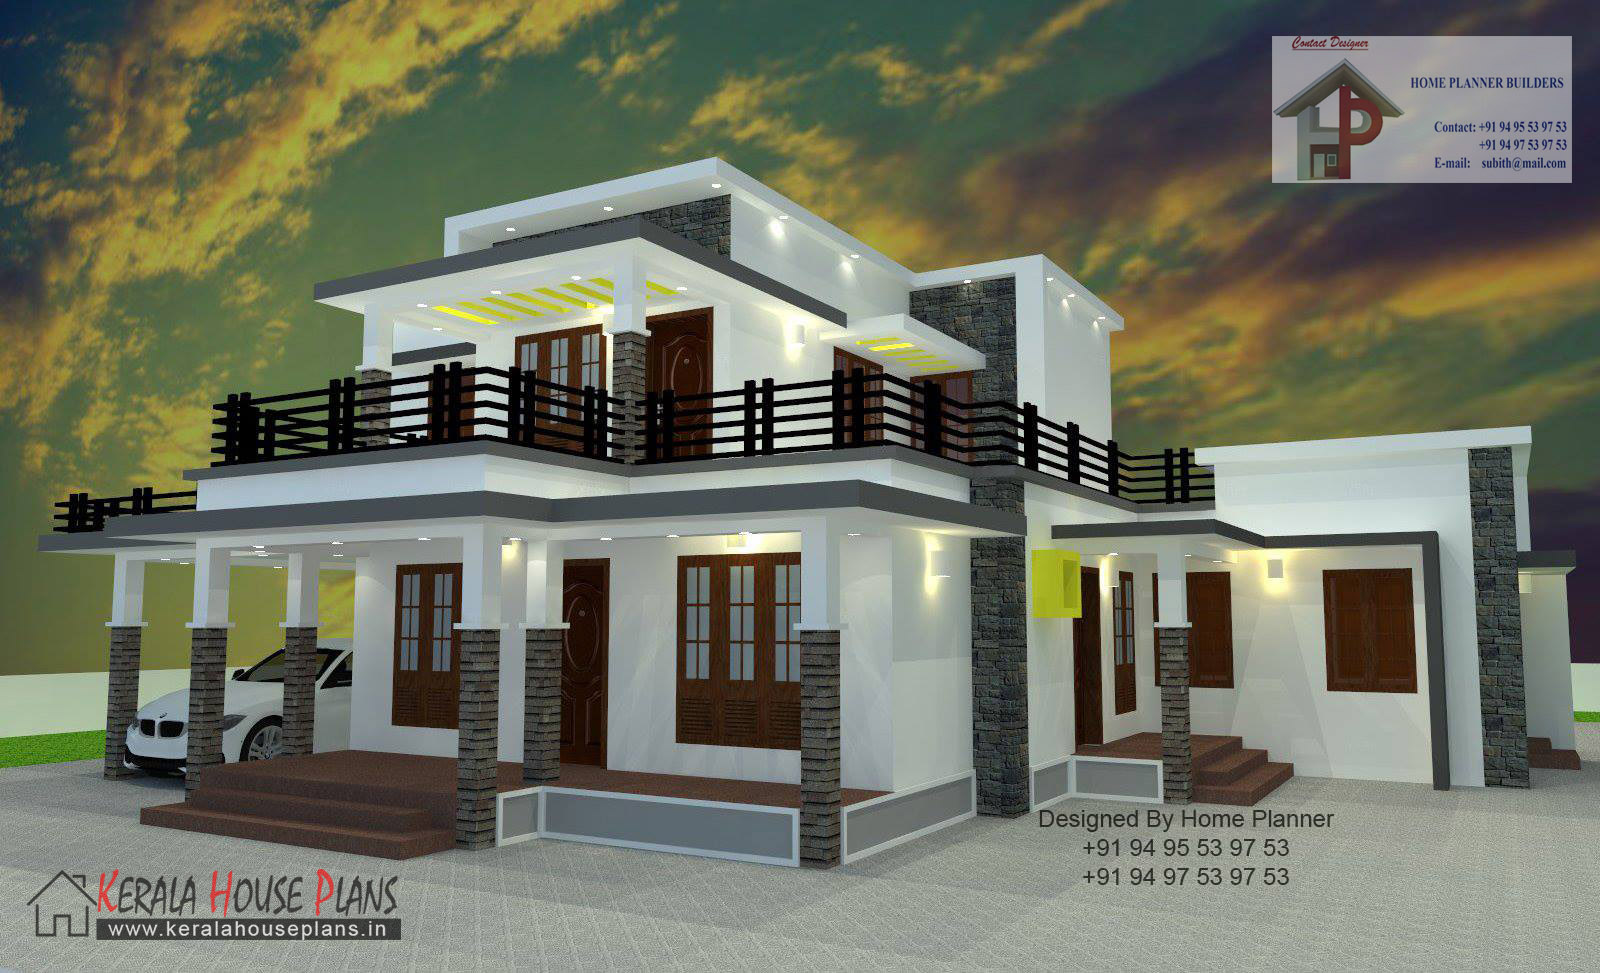 2000 sqft box type house kerala house plans designs for Houses and plans